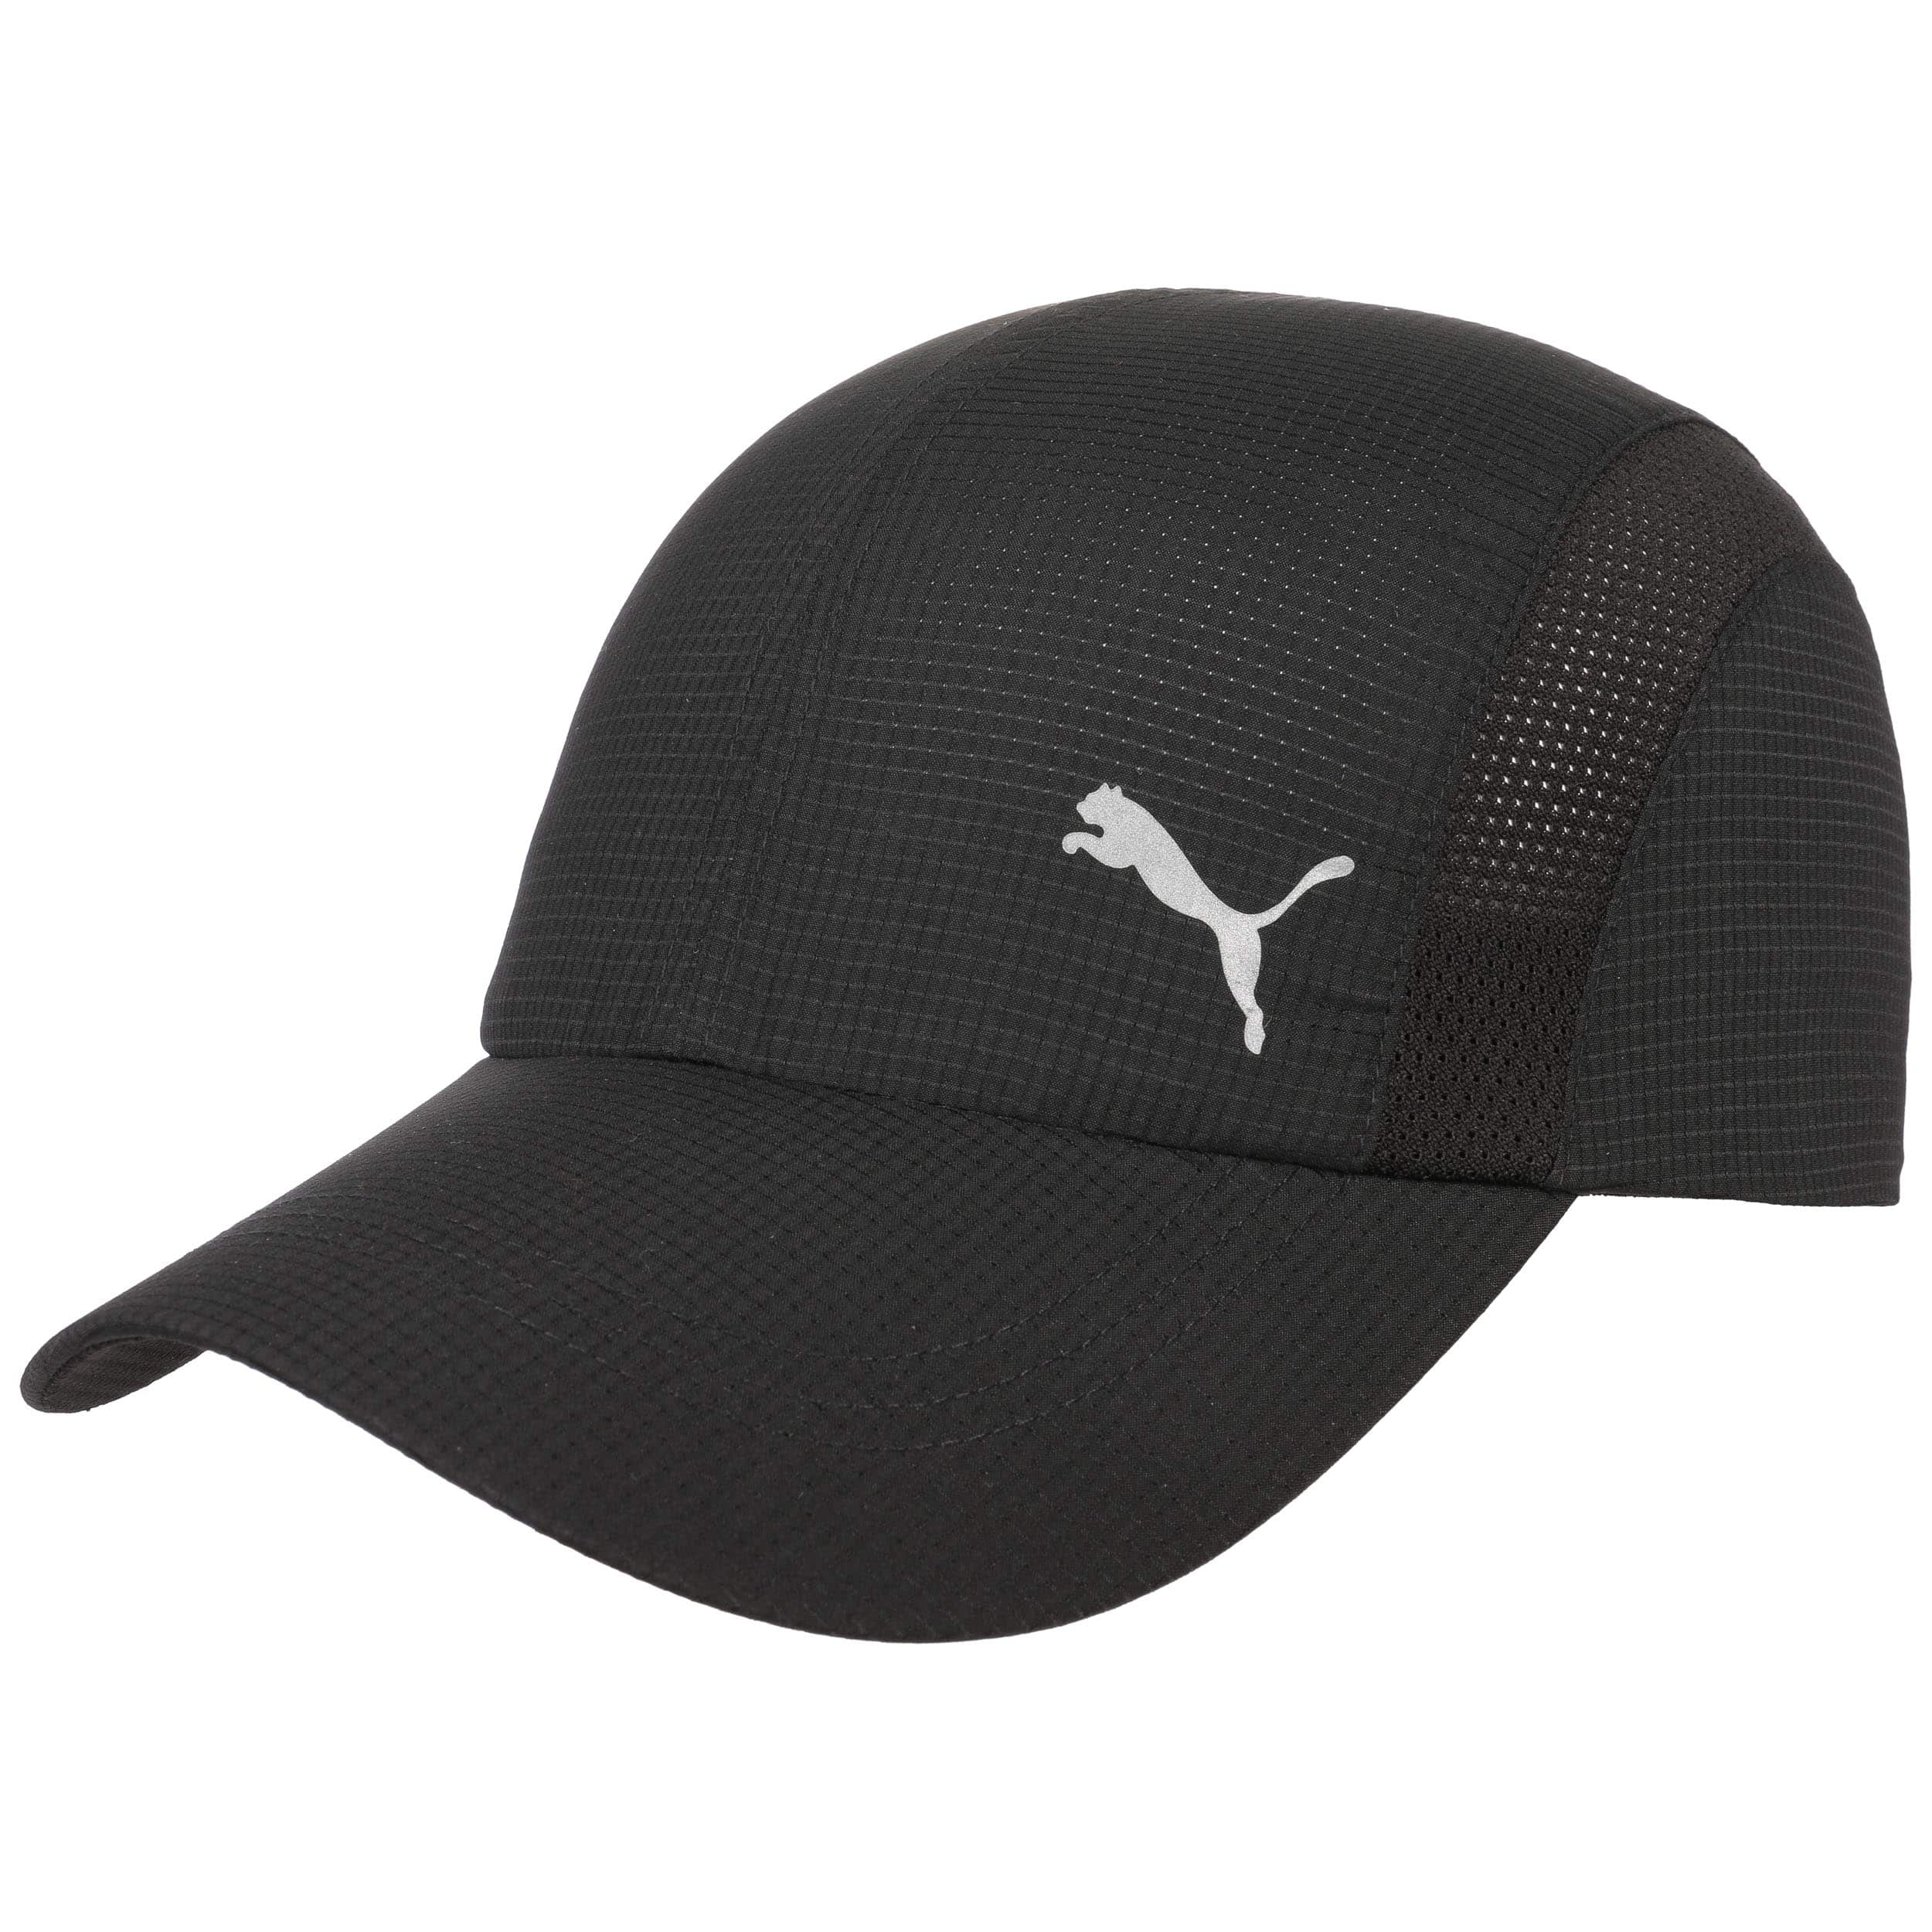 bd1e4c34651 ... Performance Running Cap by PUMA - black 5